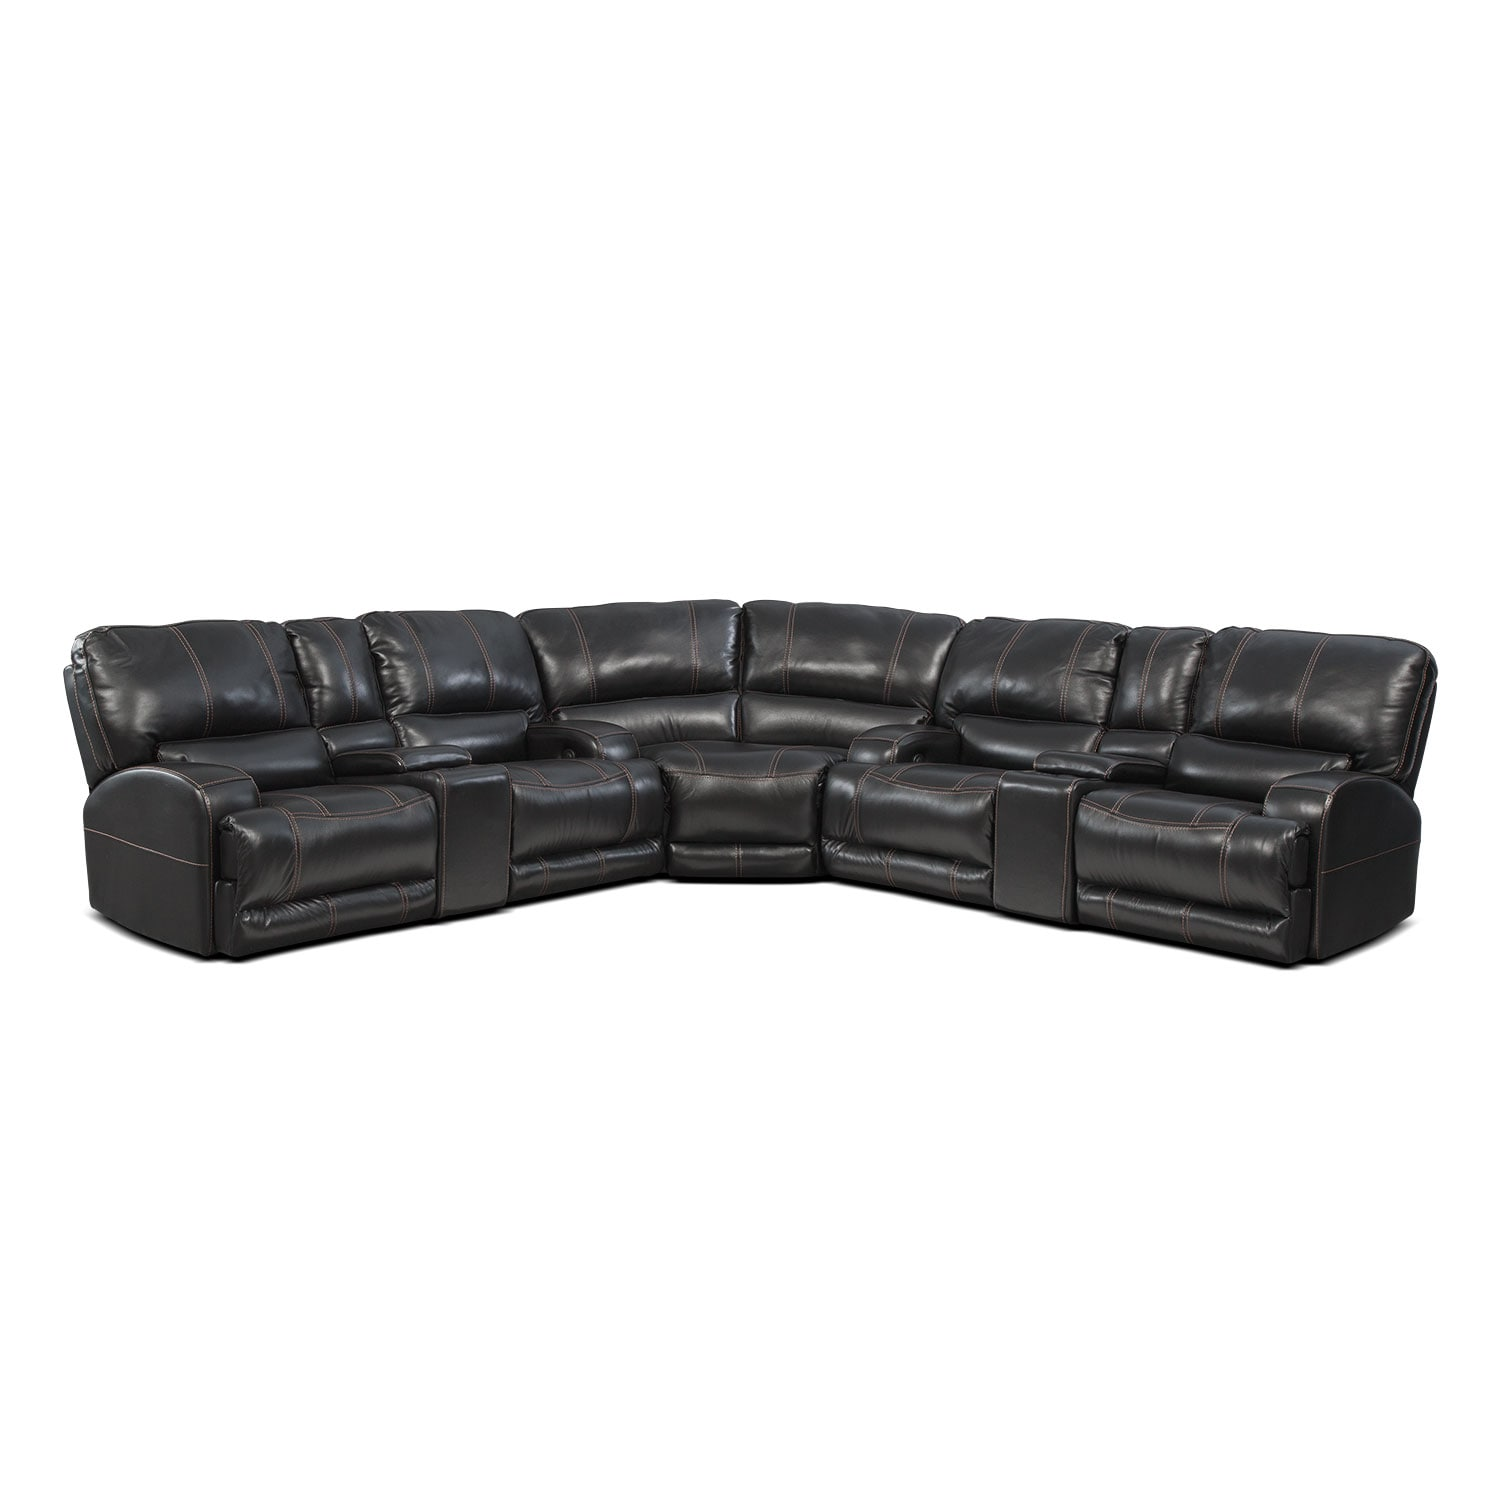 Barton 3-Piece Power Reclining Sectional with 2 Consoles - Black